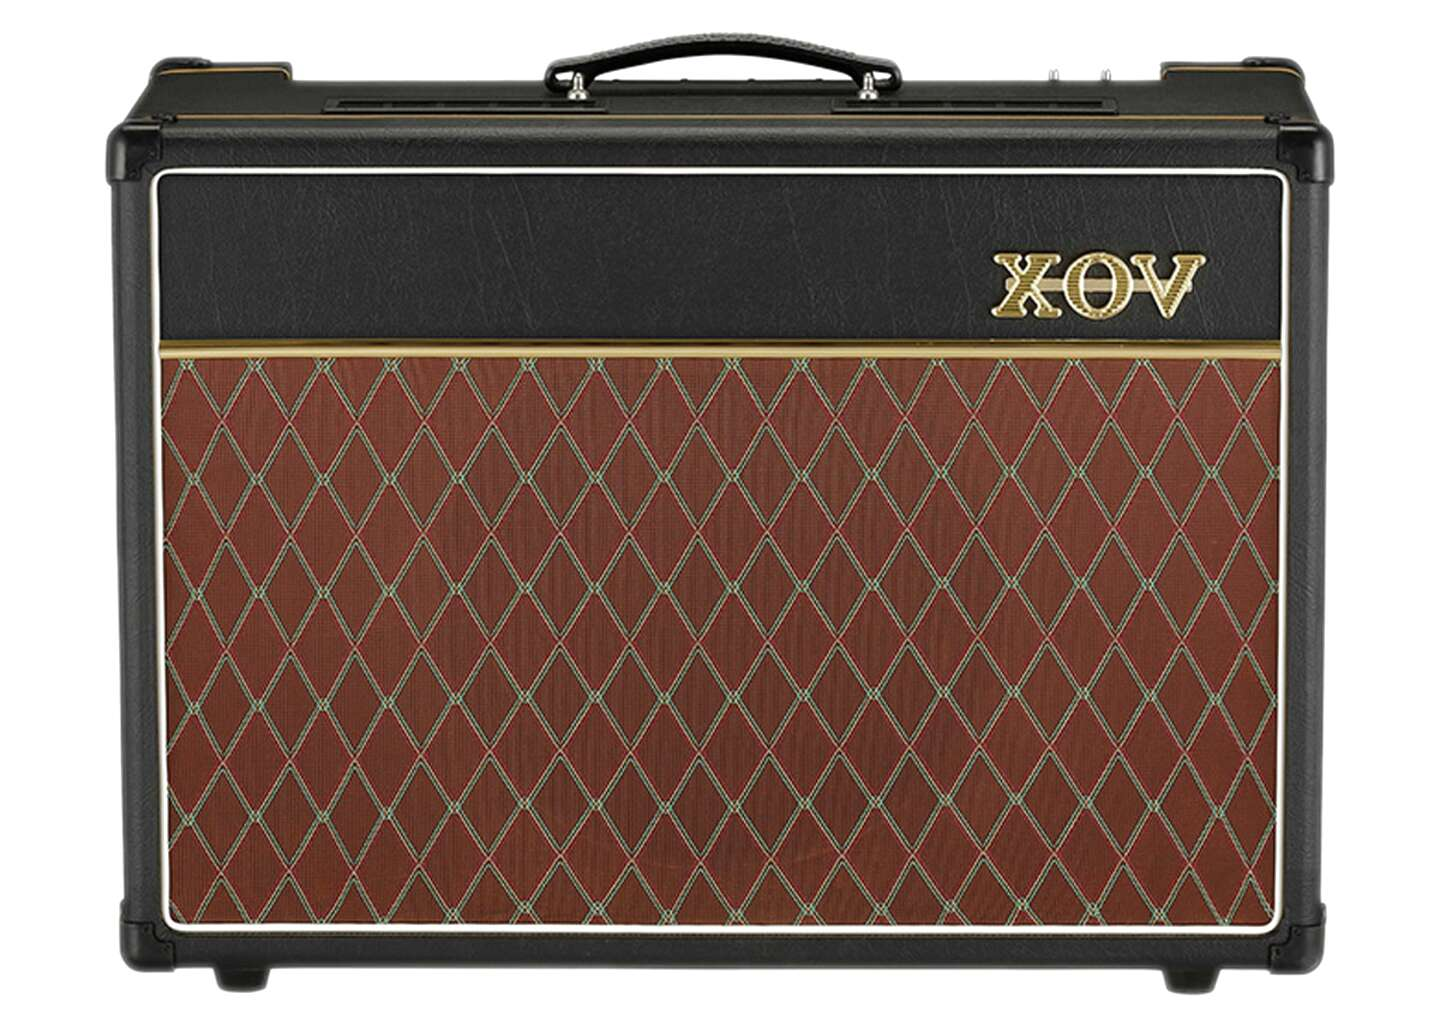 vox ac15c1 for sale